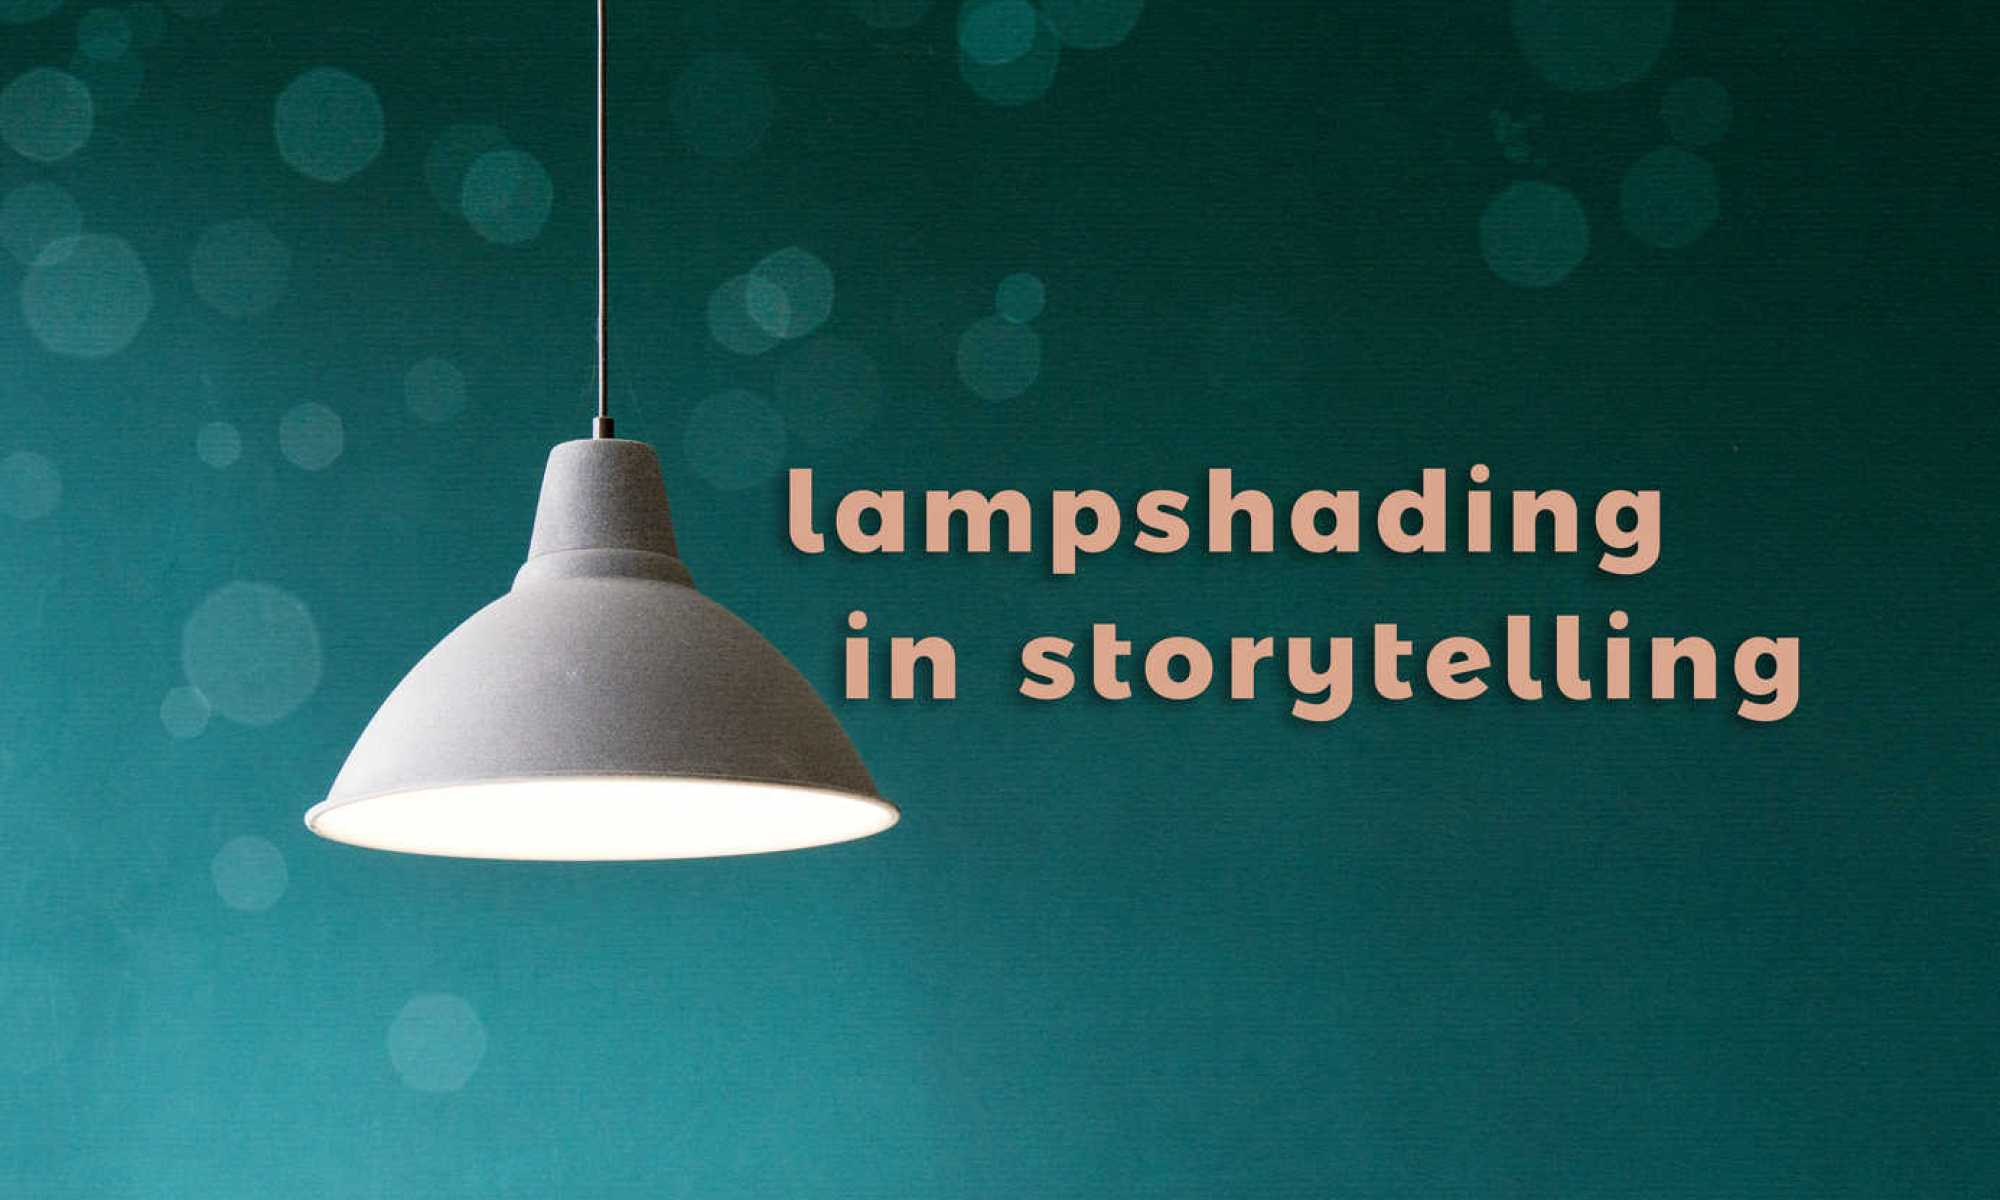 lampshading in storytelling